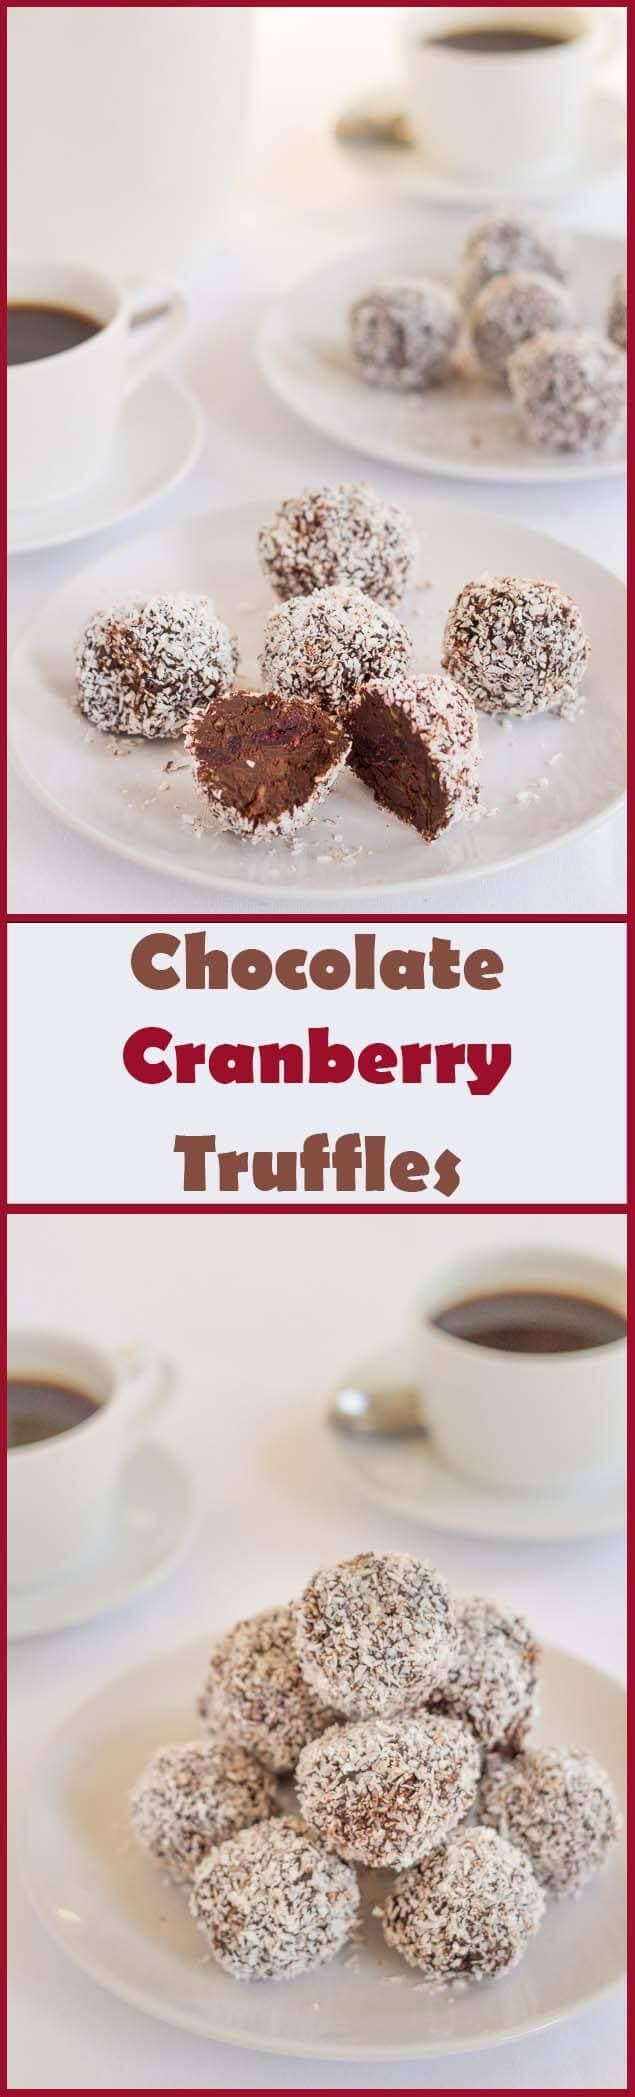 Delicious and simple to make, you'll love these chocolate cranberry truffles. Low fat, low carb, only 184 calories each and with a secret healthy ingredient!